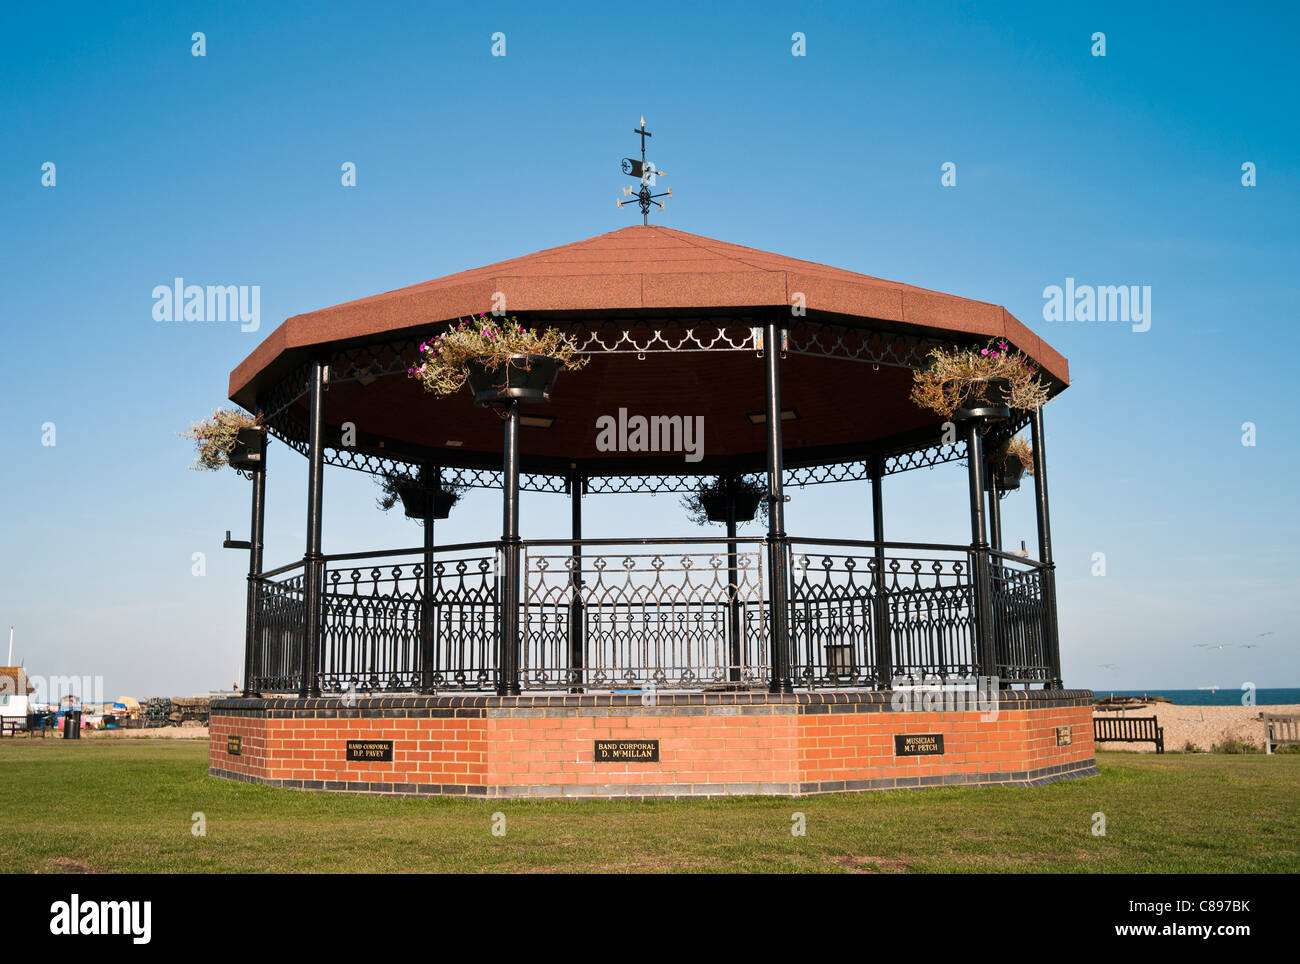 The Military Bandstand Walmer Deal in Memory of Military Bandsmen Killed In IRA Bombing of 1989. - Stock Image